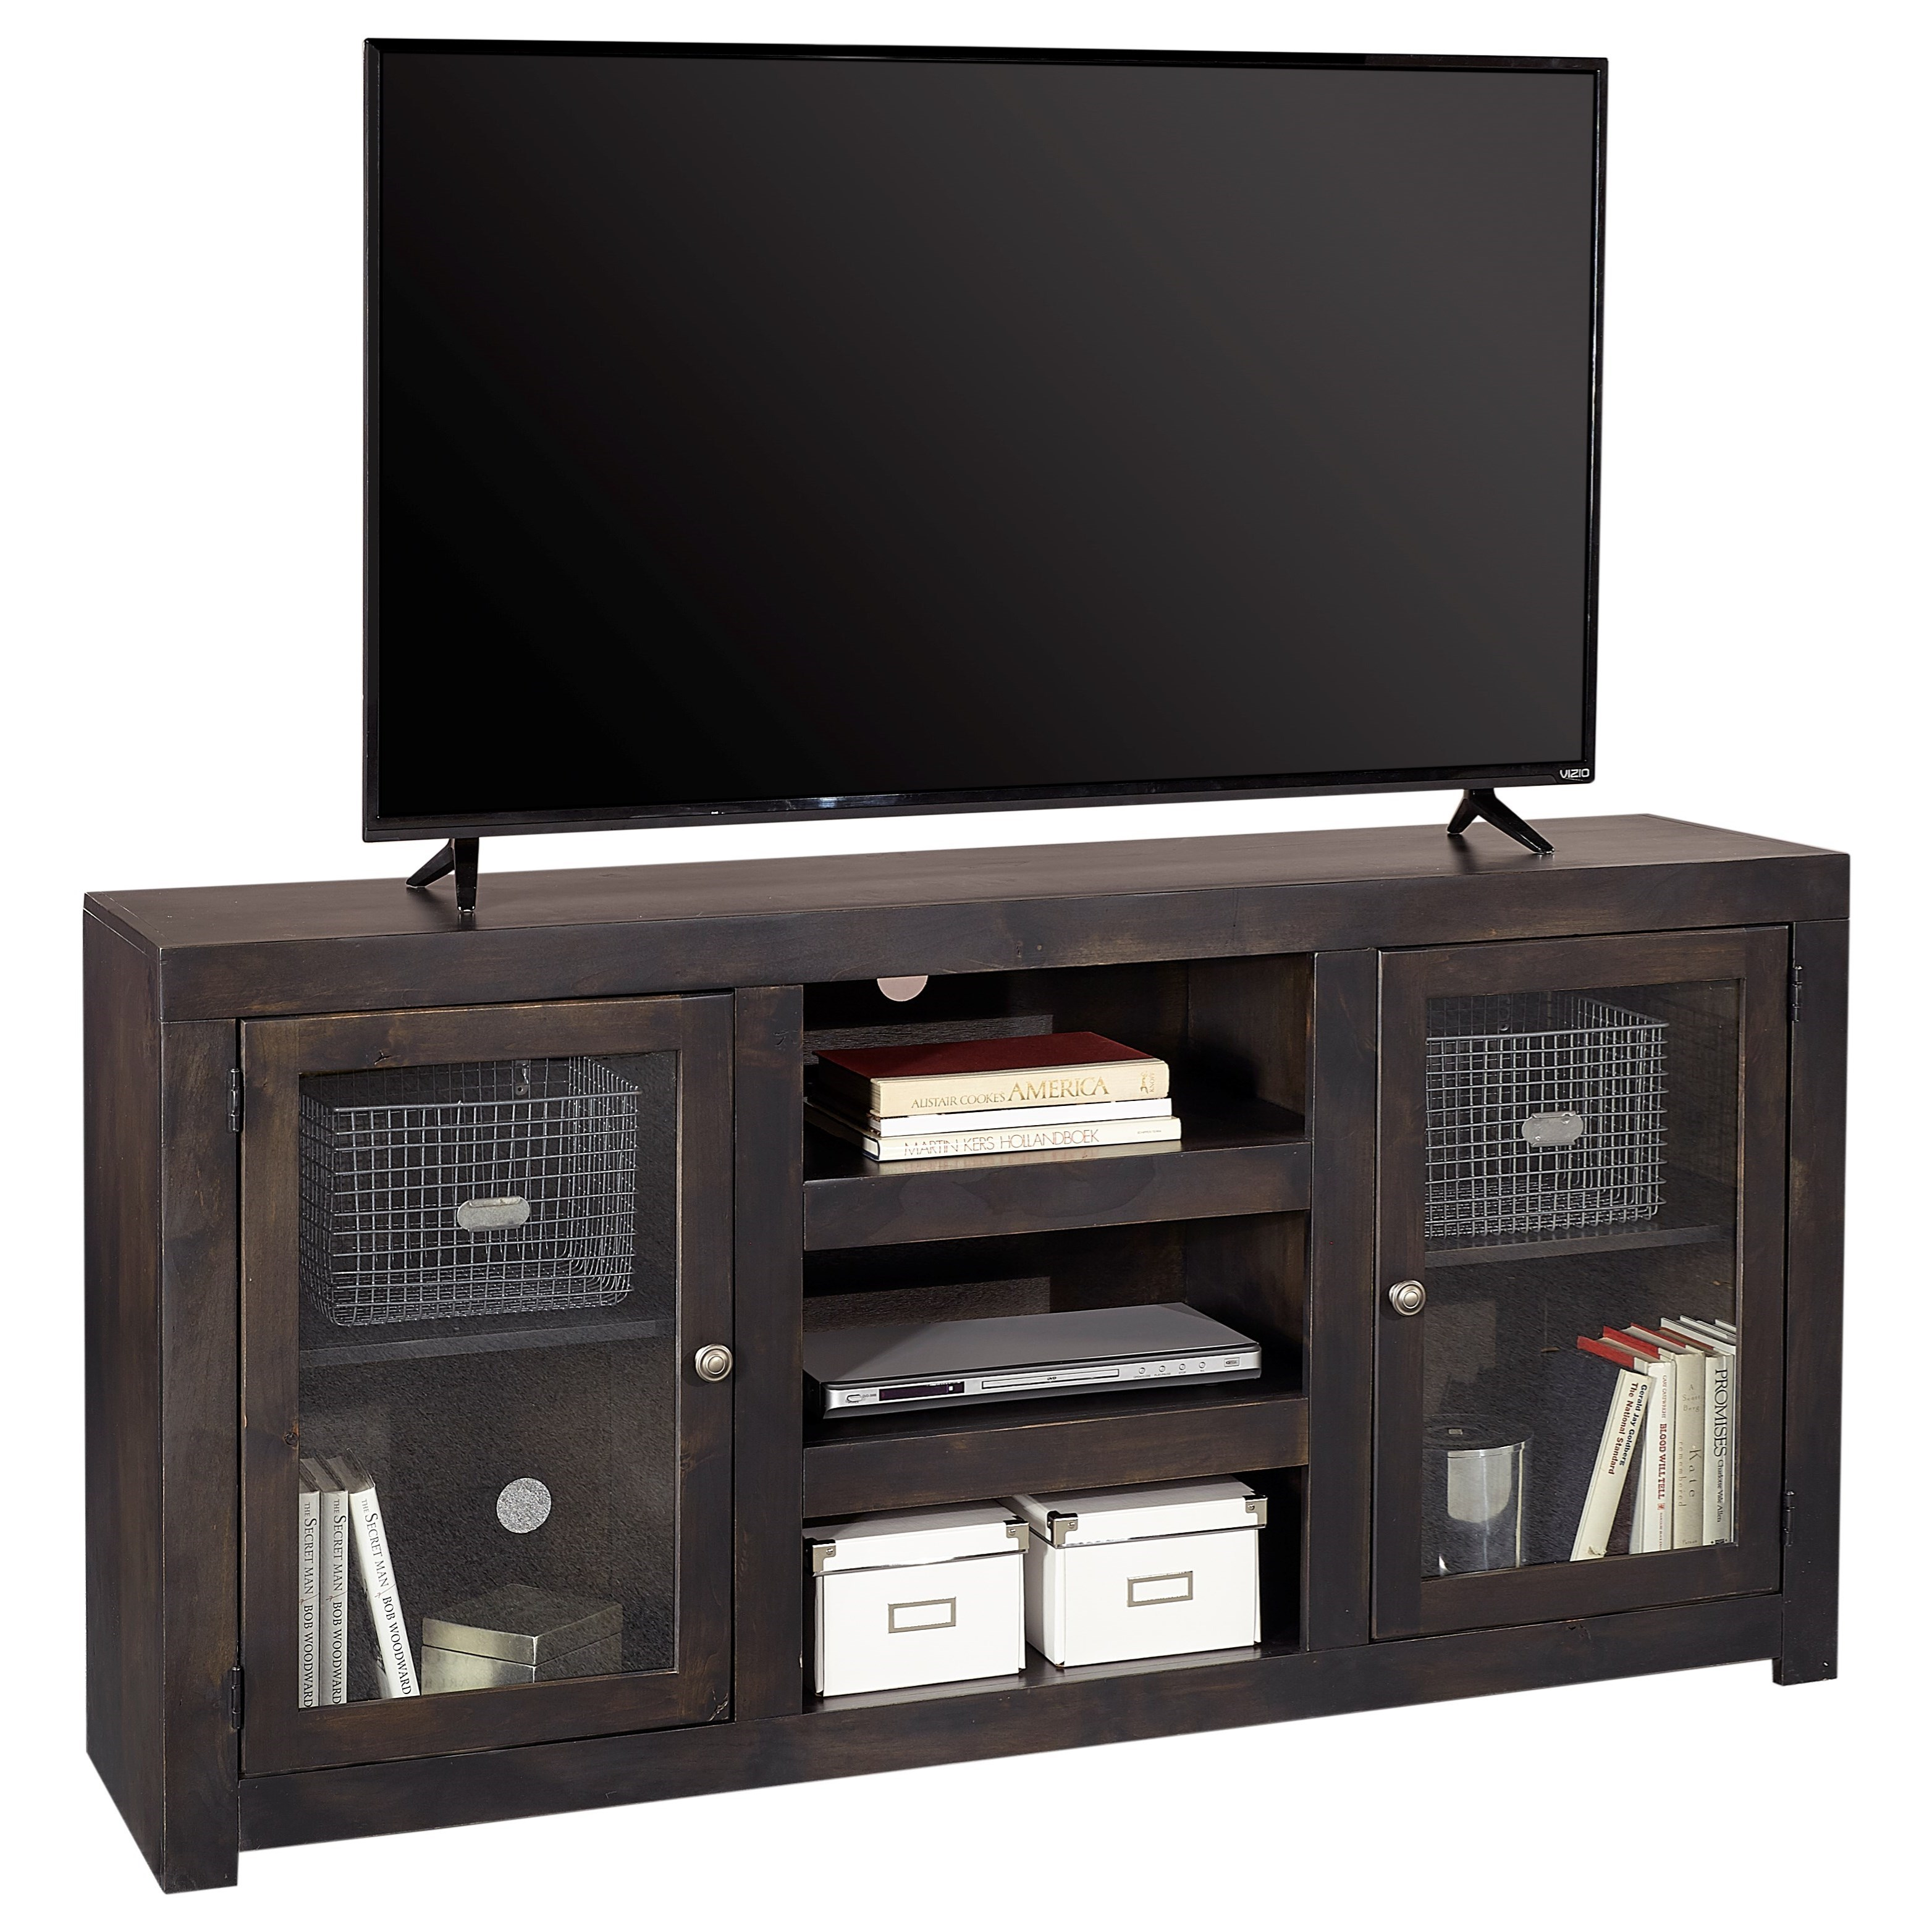 Avery Loft TV Console by Aspenhome at Red Knot